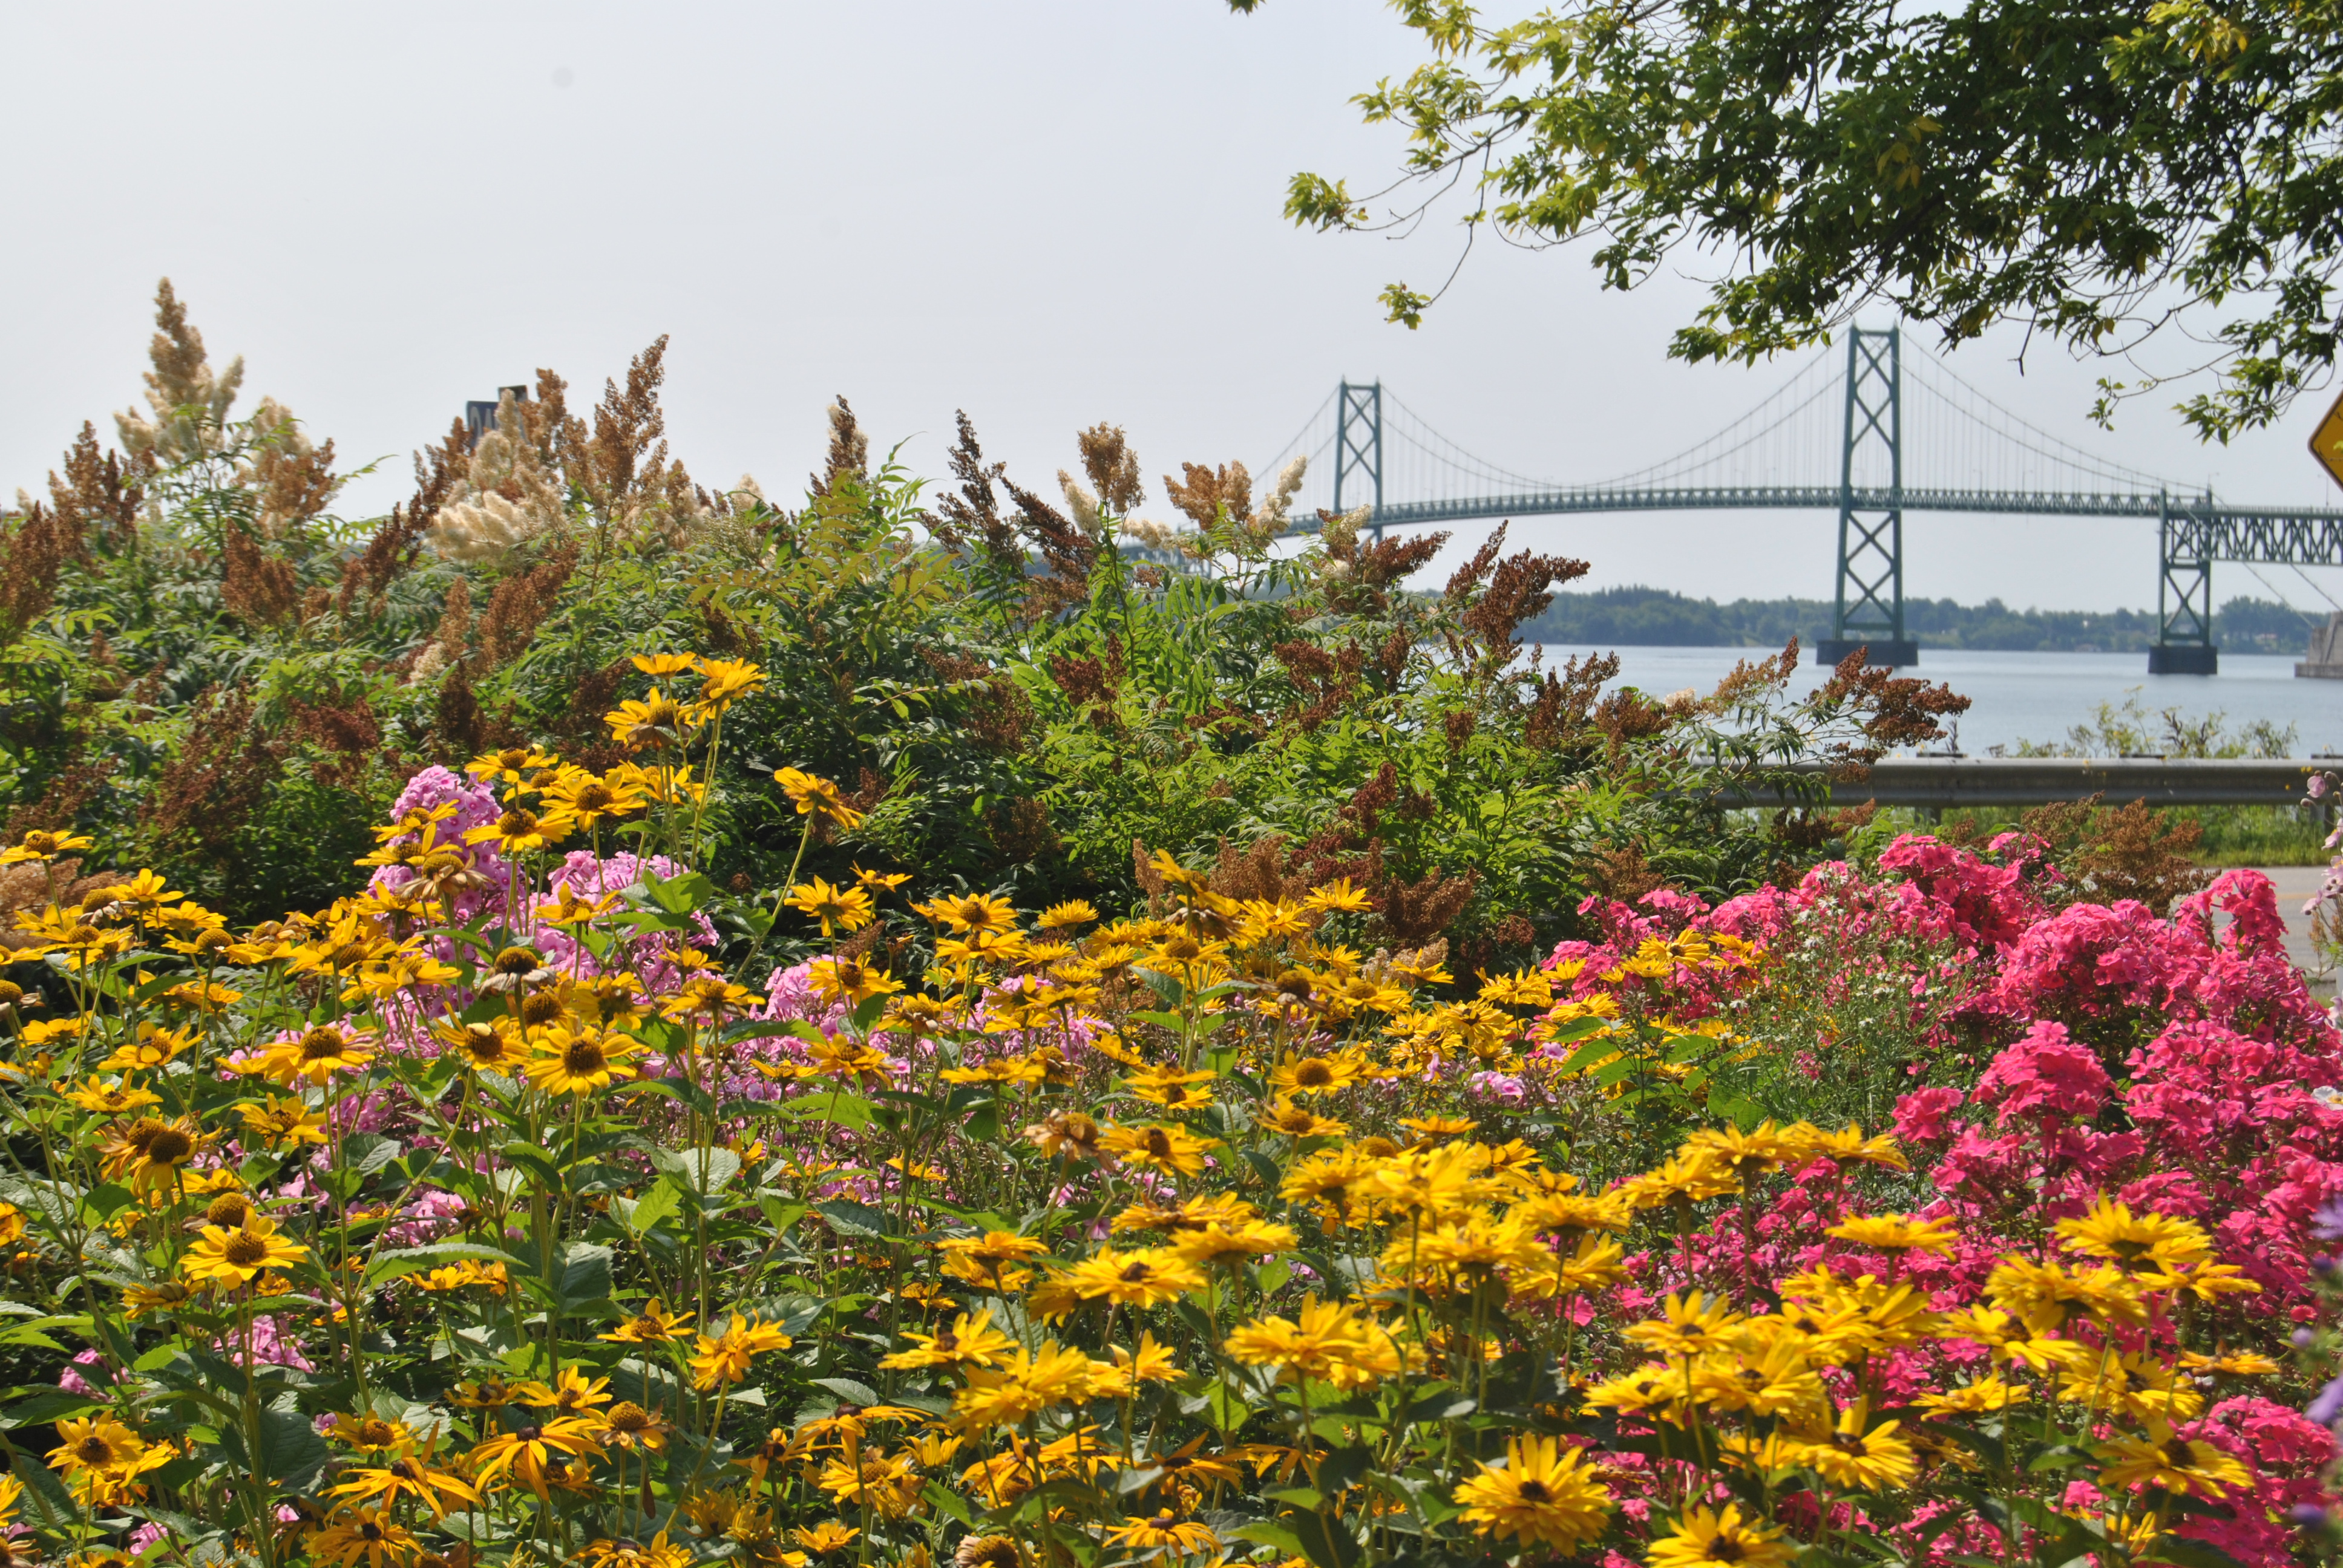 Flowers along the St. Lawrence River facing an international bridge